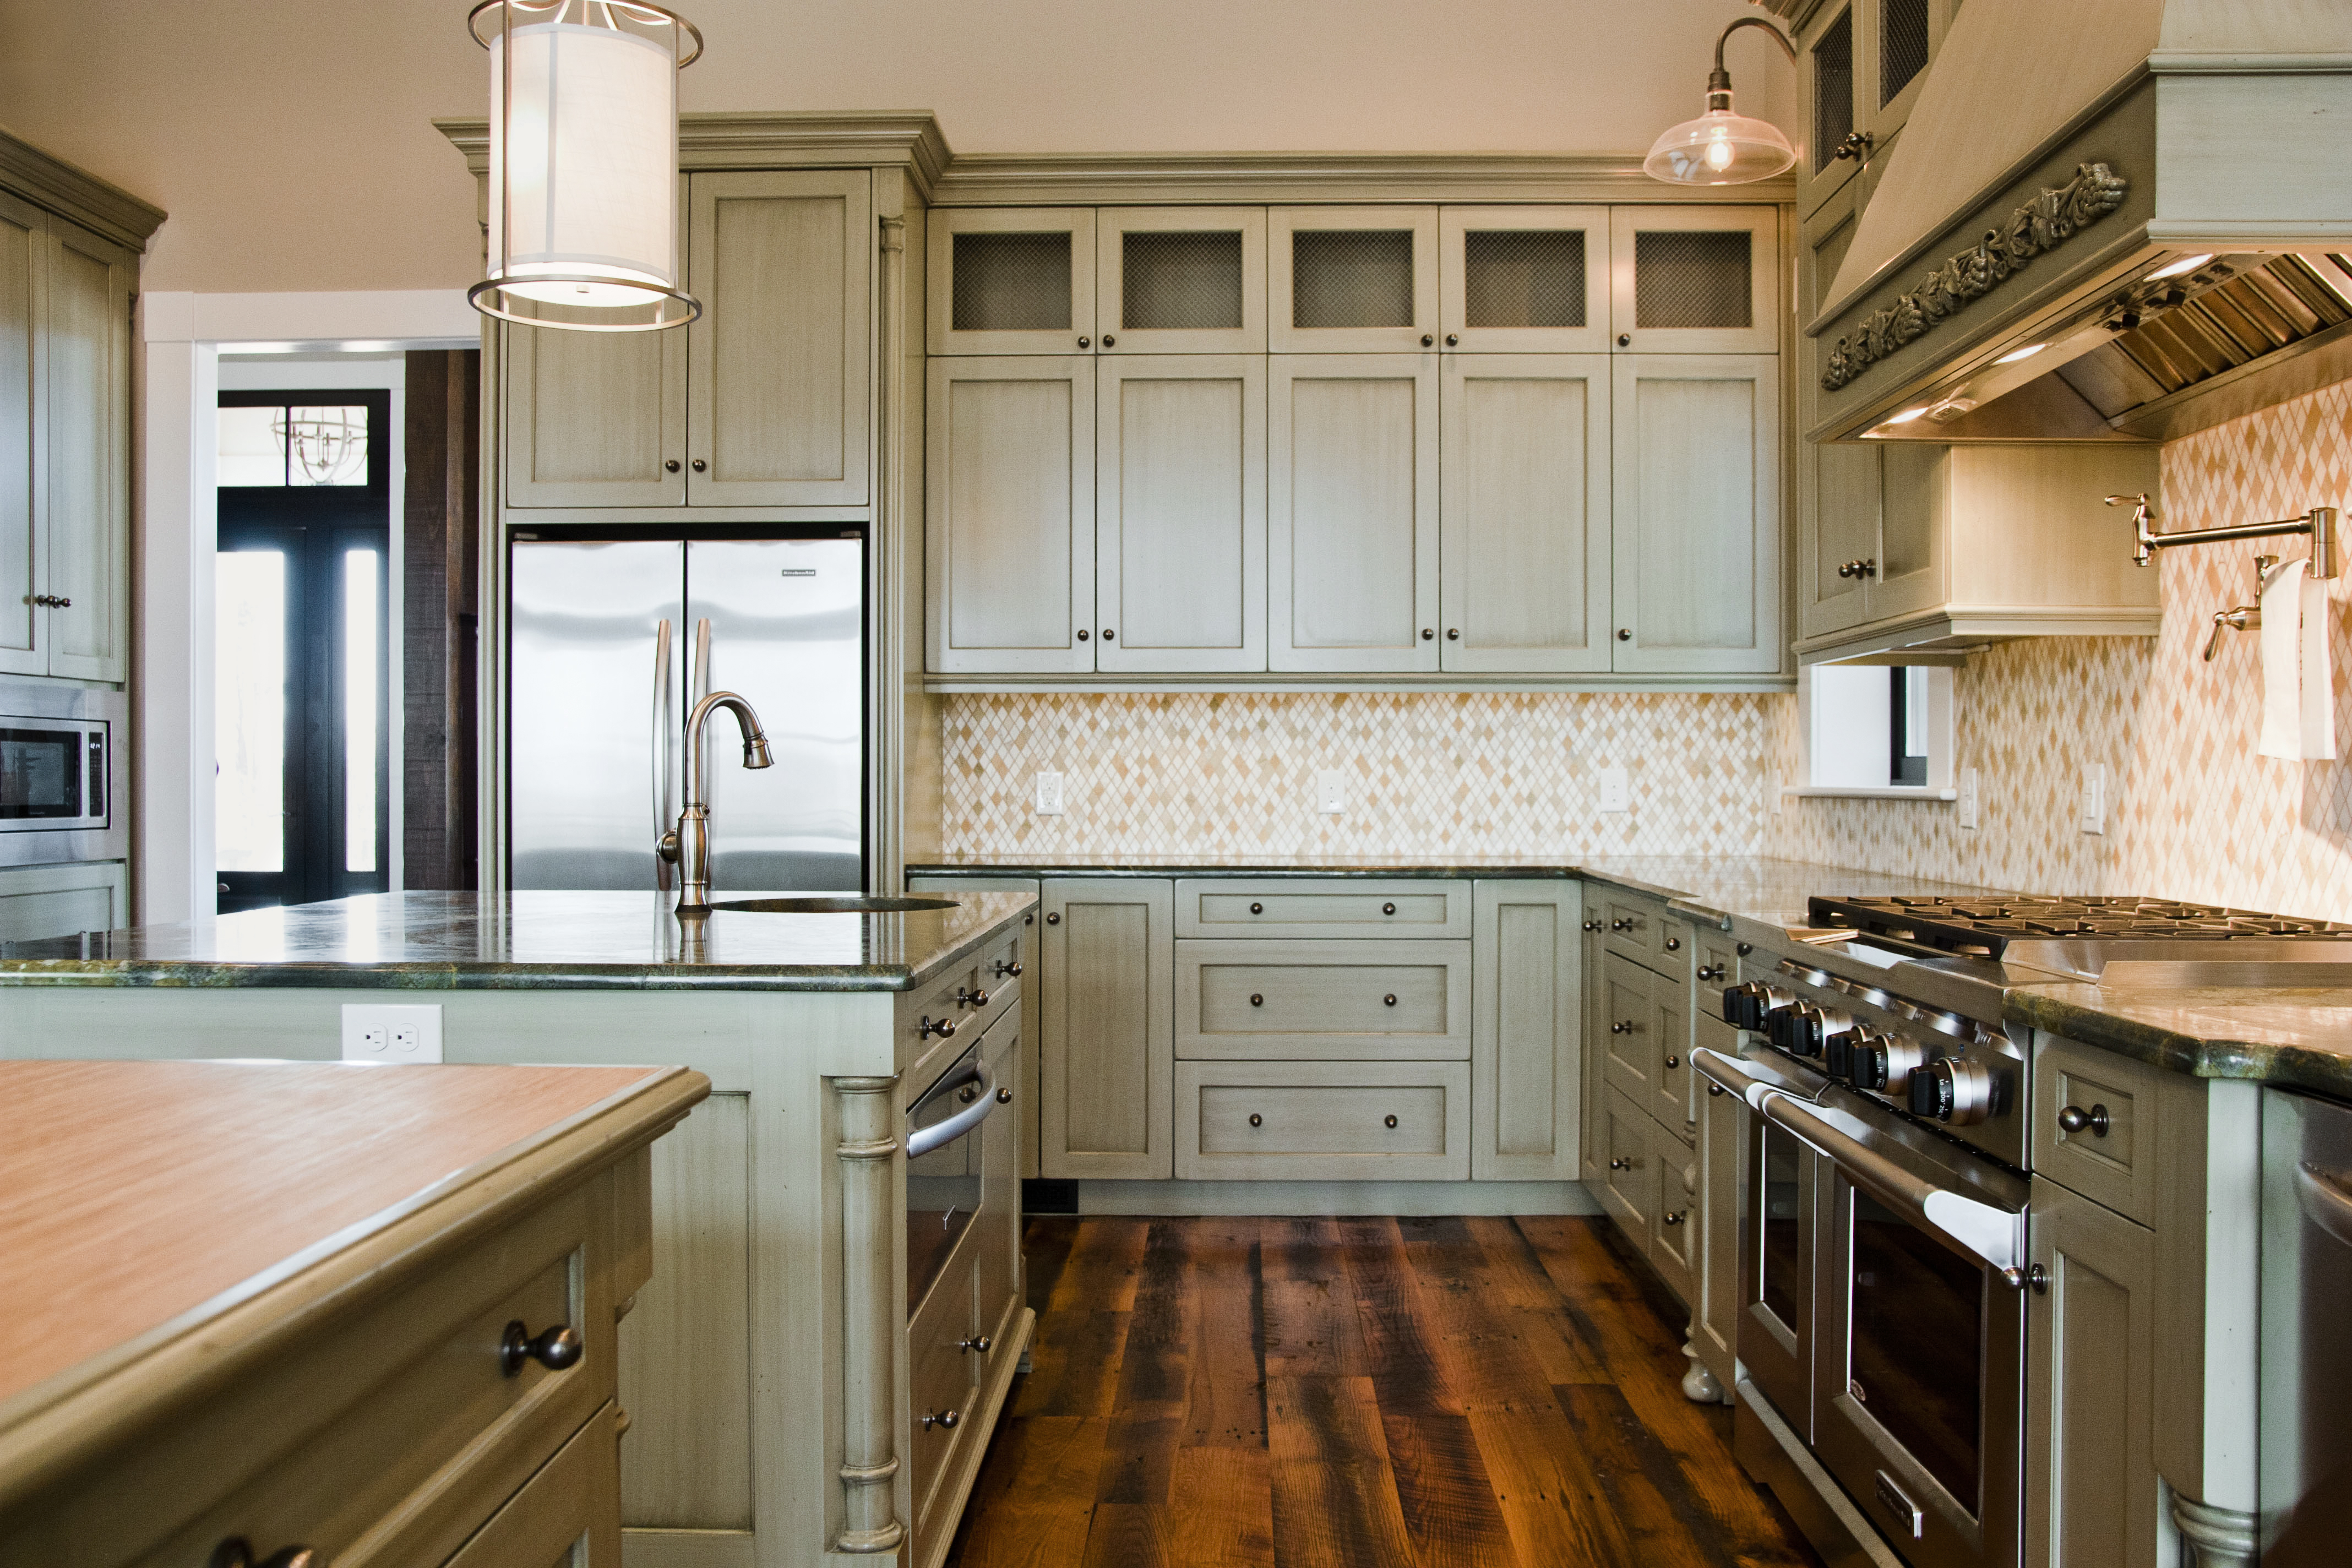 Slonaker Residence Cabinets by Lantz Custom Woodworking